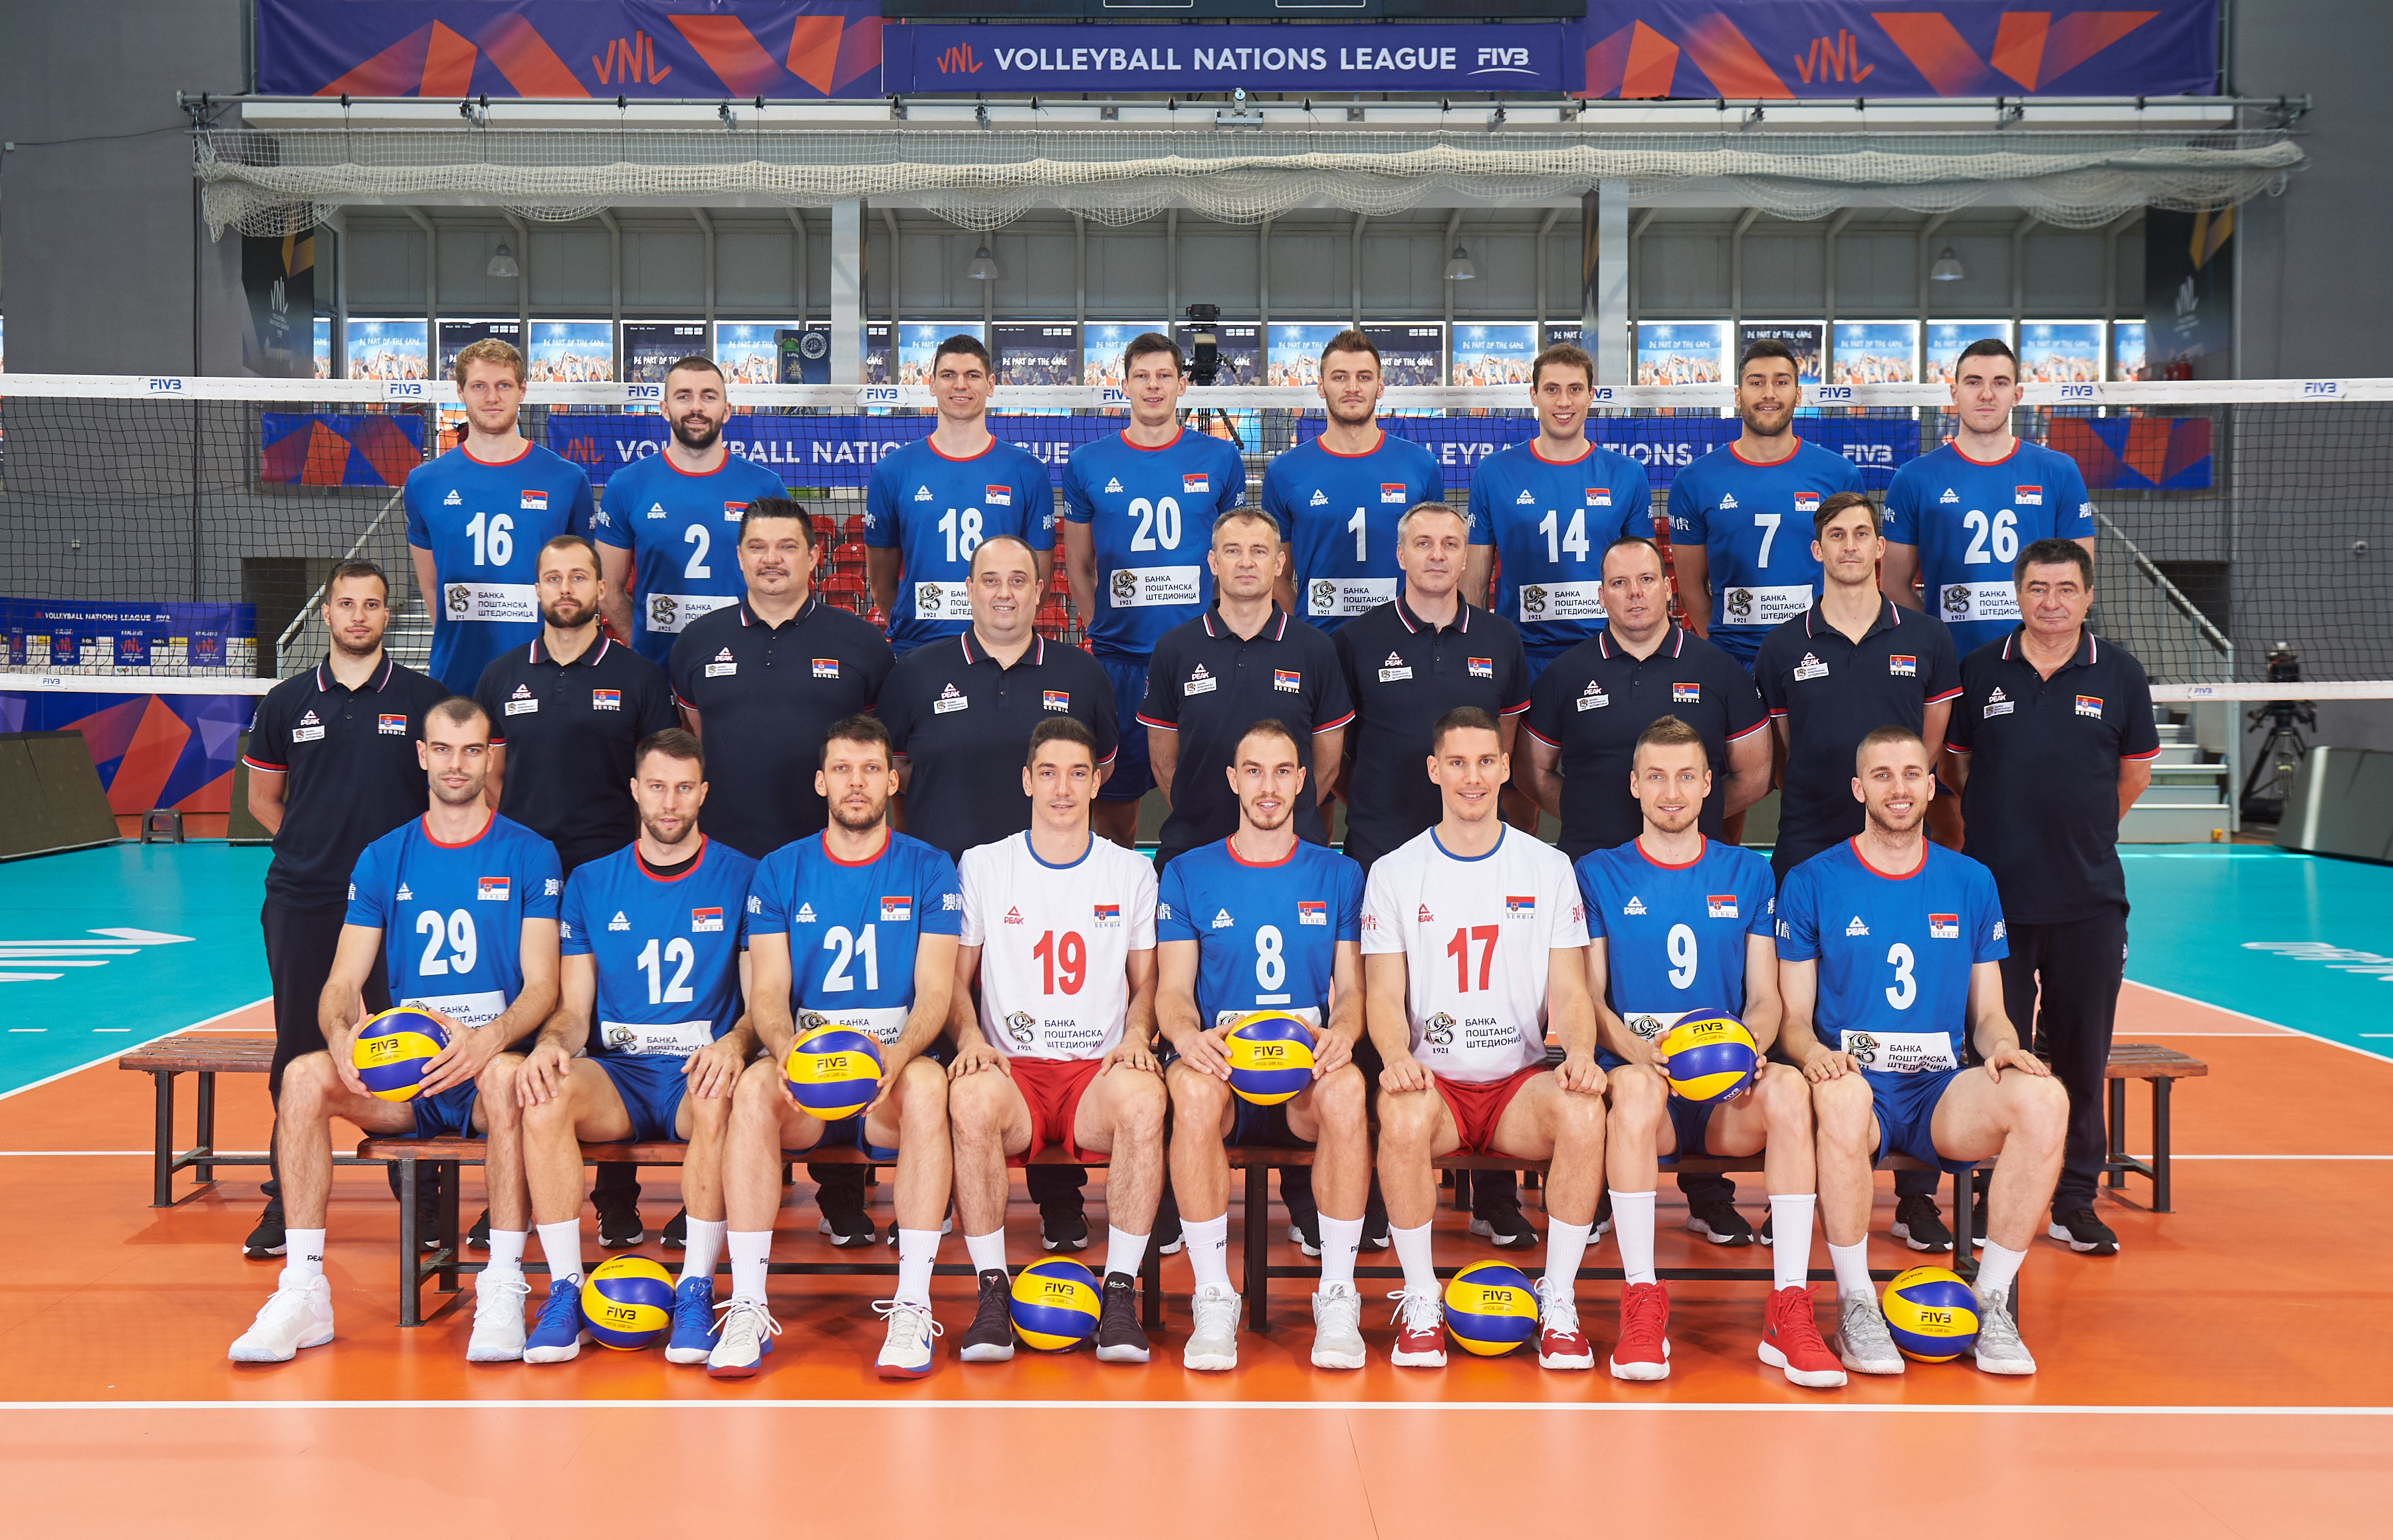 Fivb Volleyball Nations League 2018 Men S Teams Overview Korea